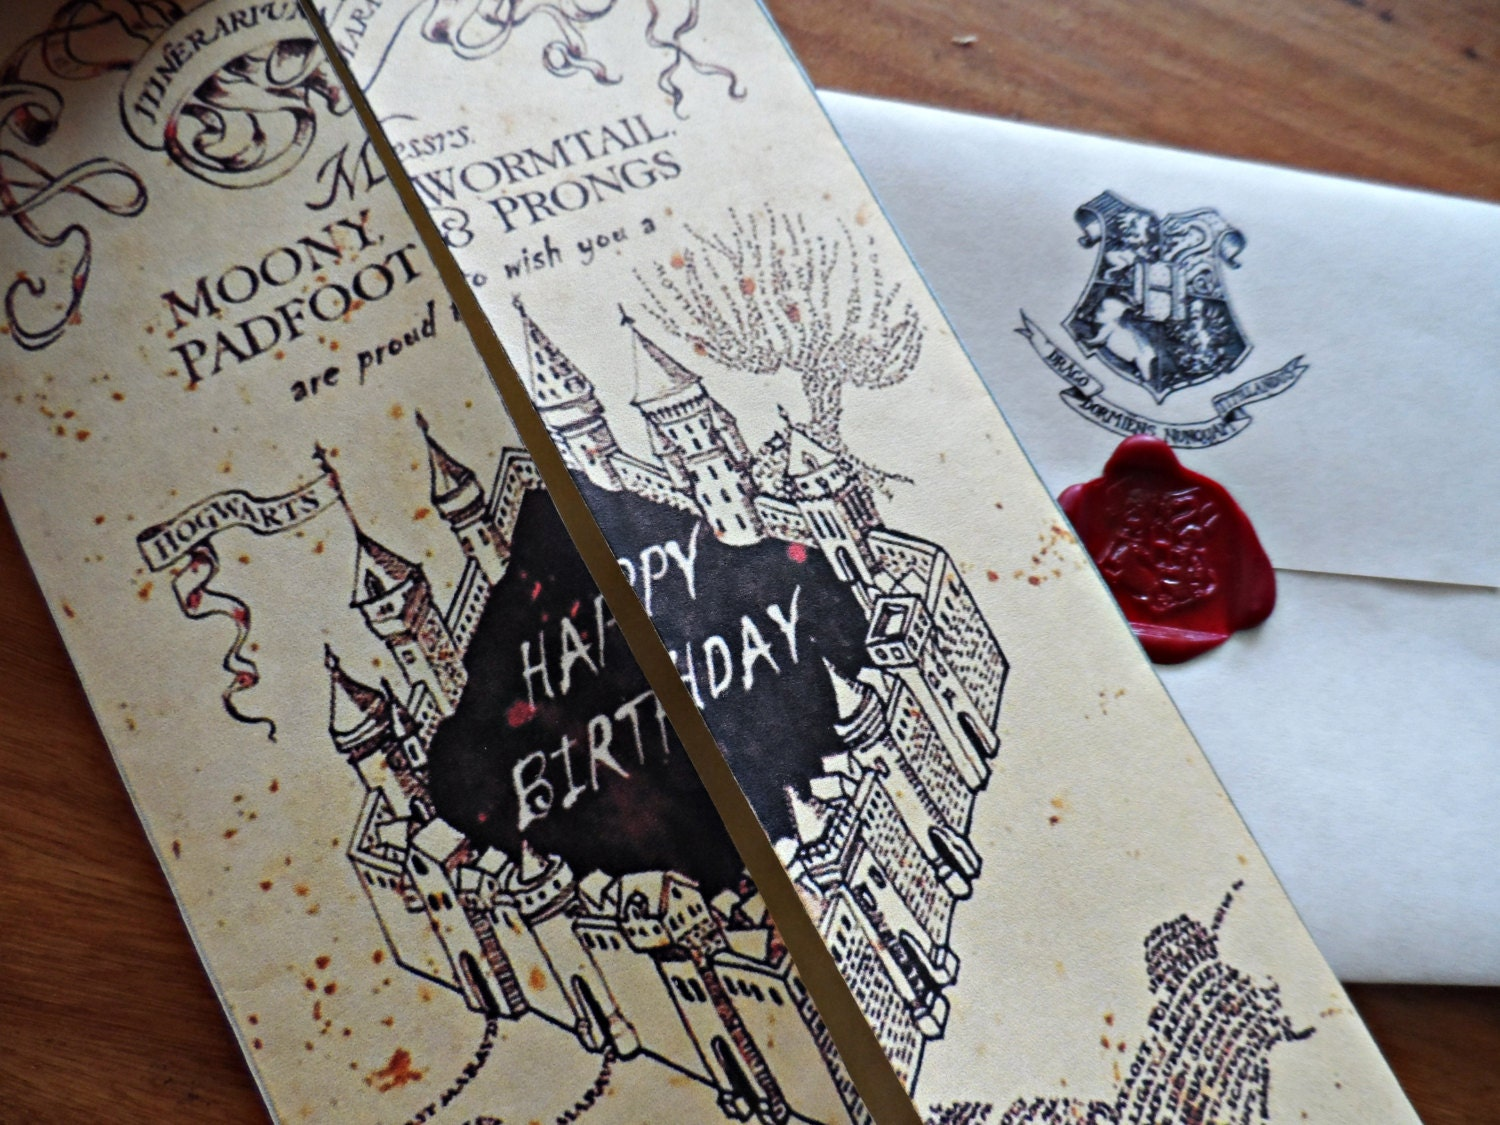 Harry Potter Birthday Cards Free Printable ~ Harry potter marauder s map birthday card by darkartswitchcraft